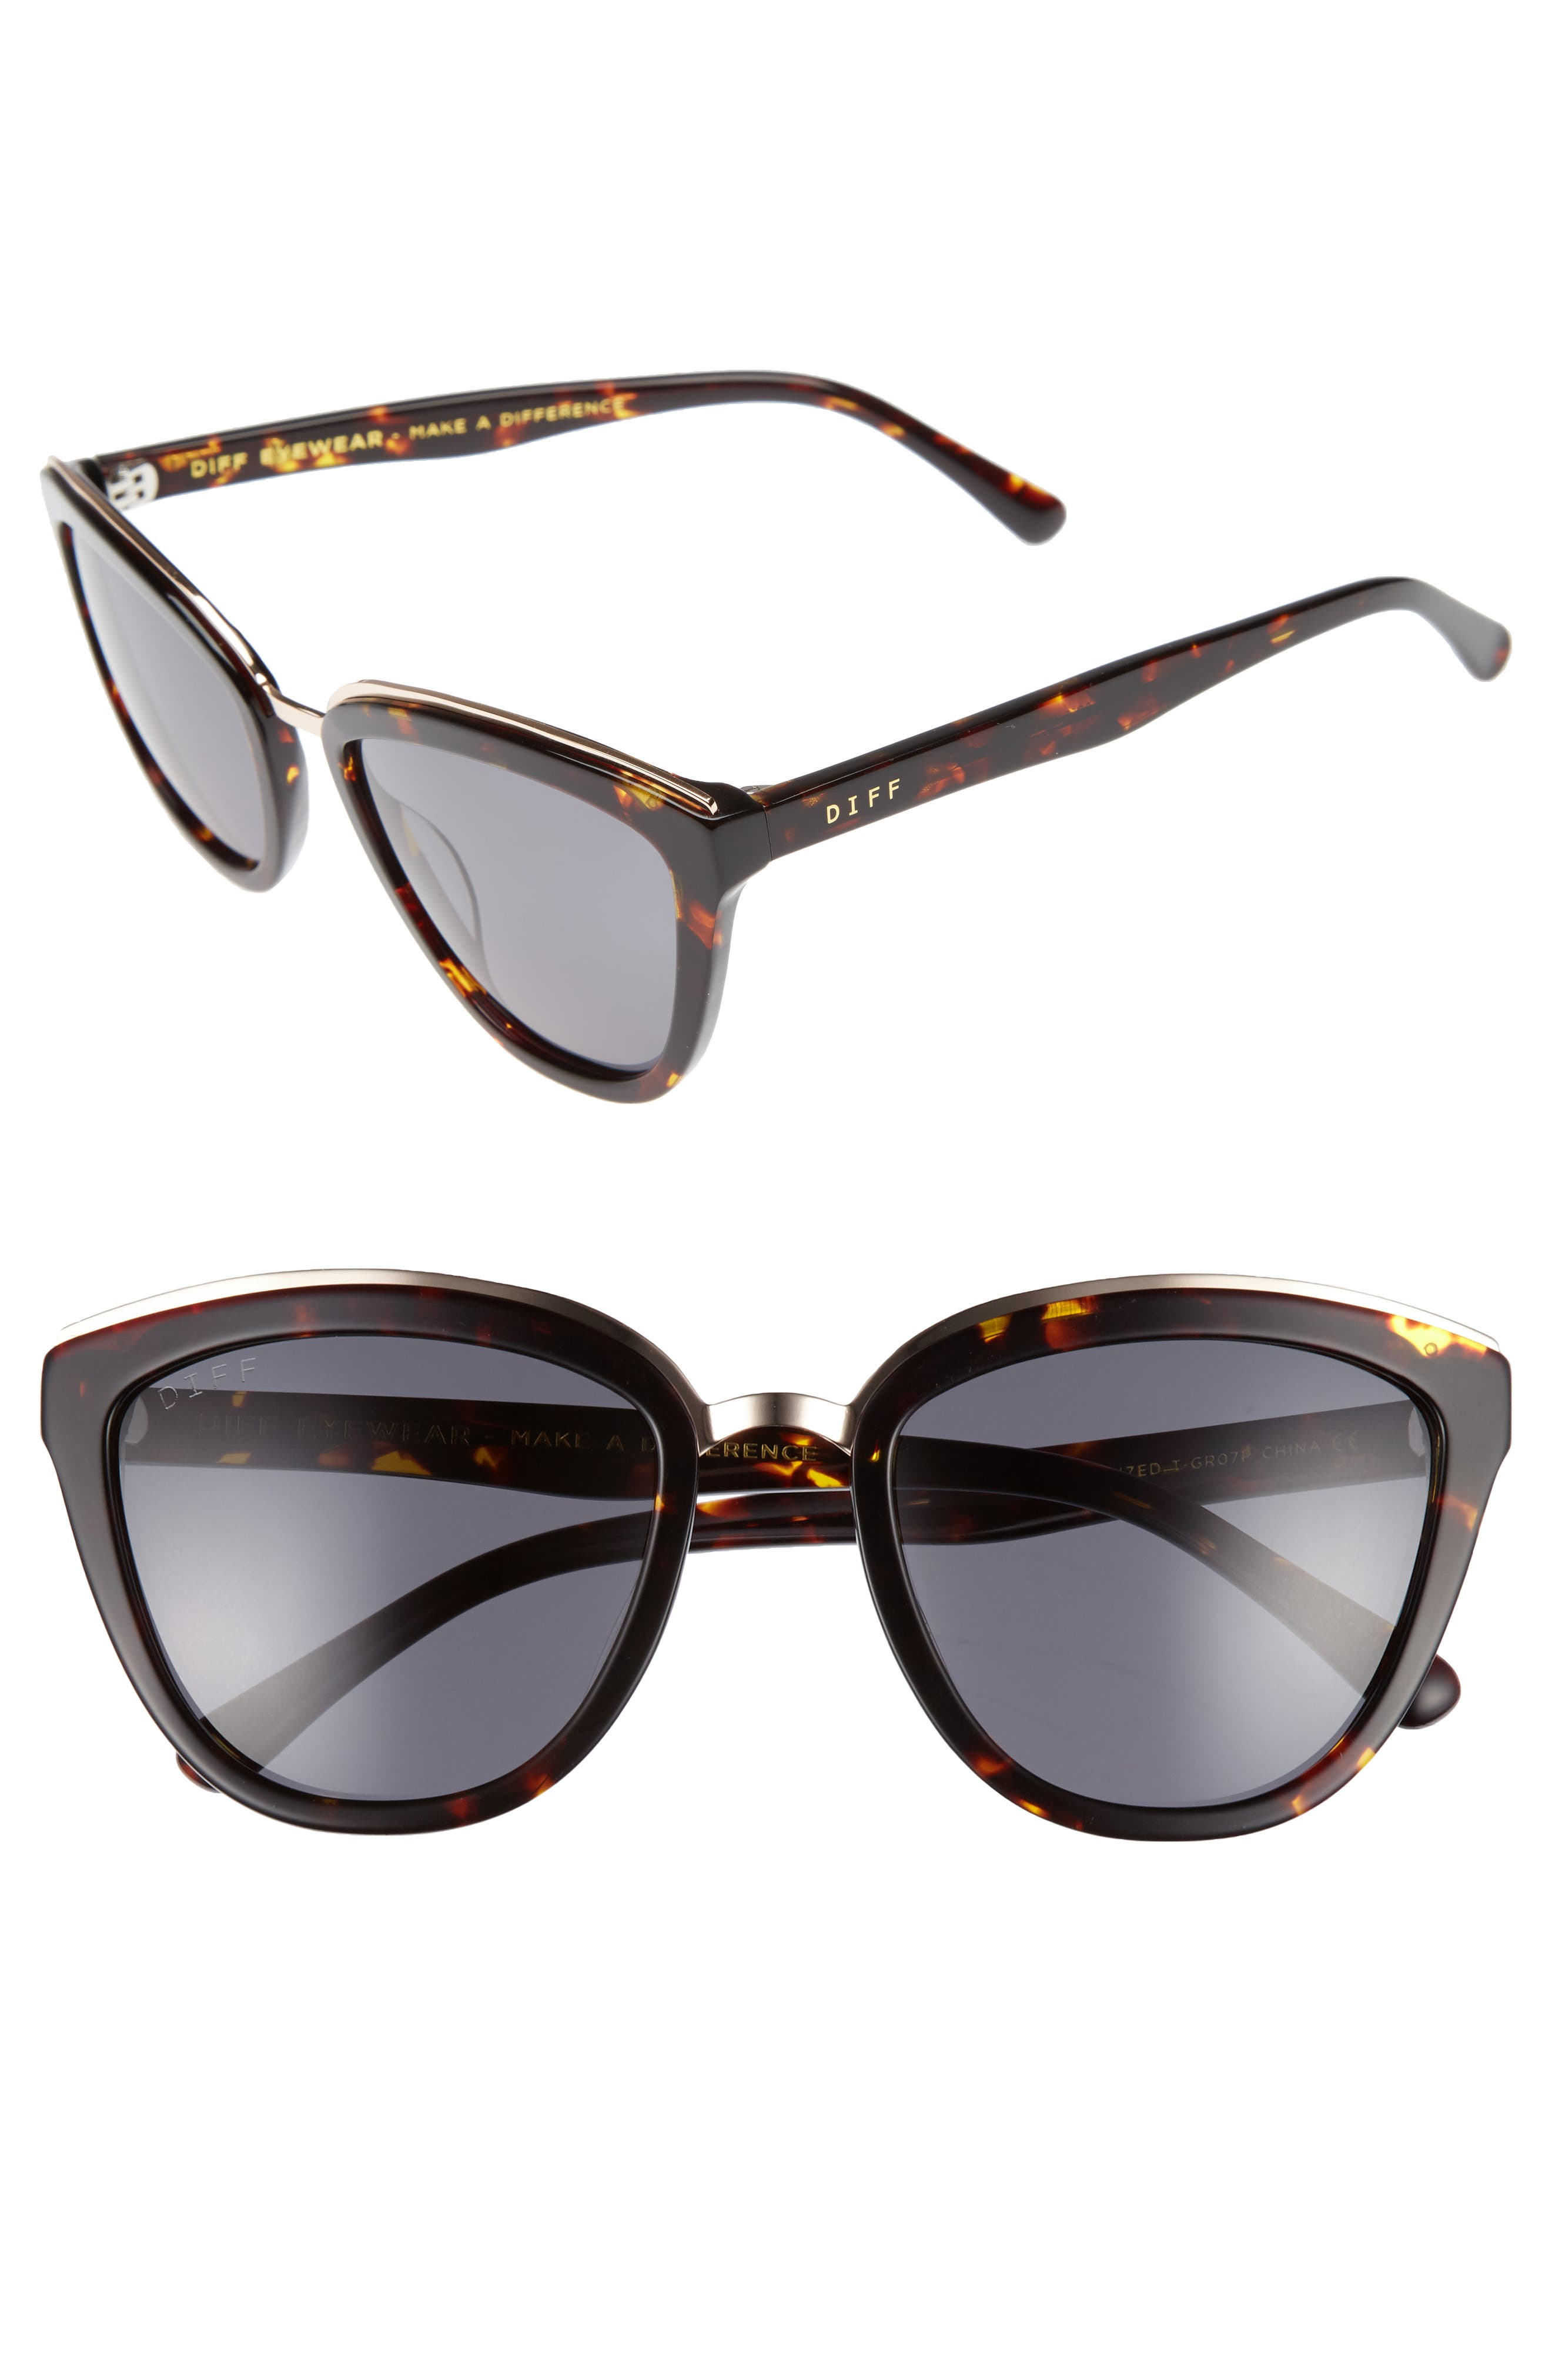 DIFF Rose 55mm Polarized Mirrored Sunglasses